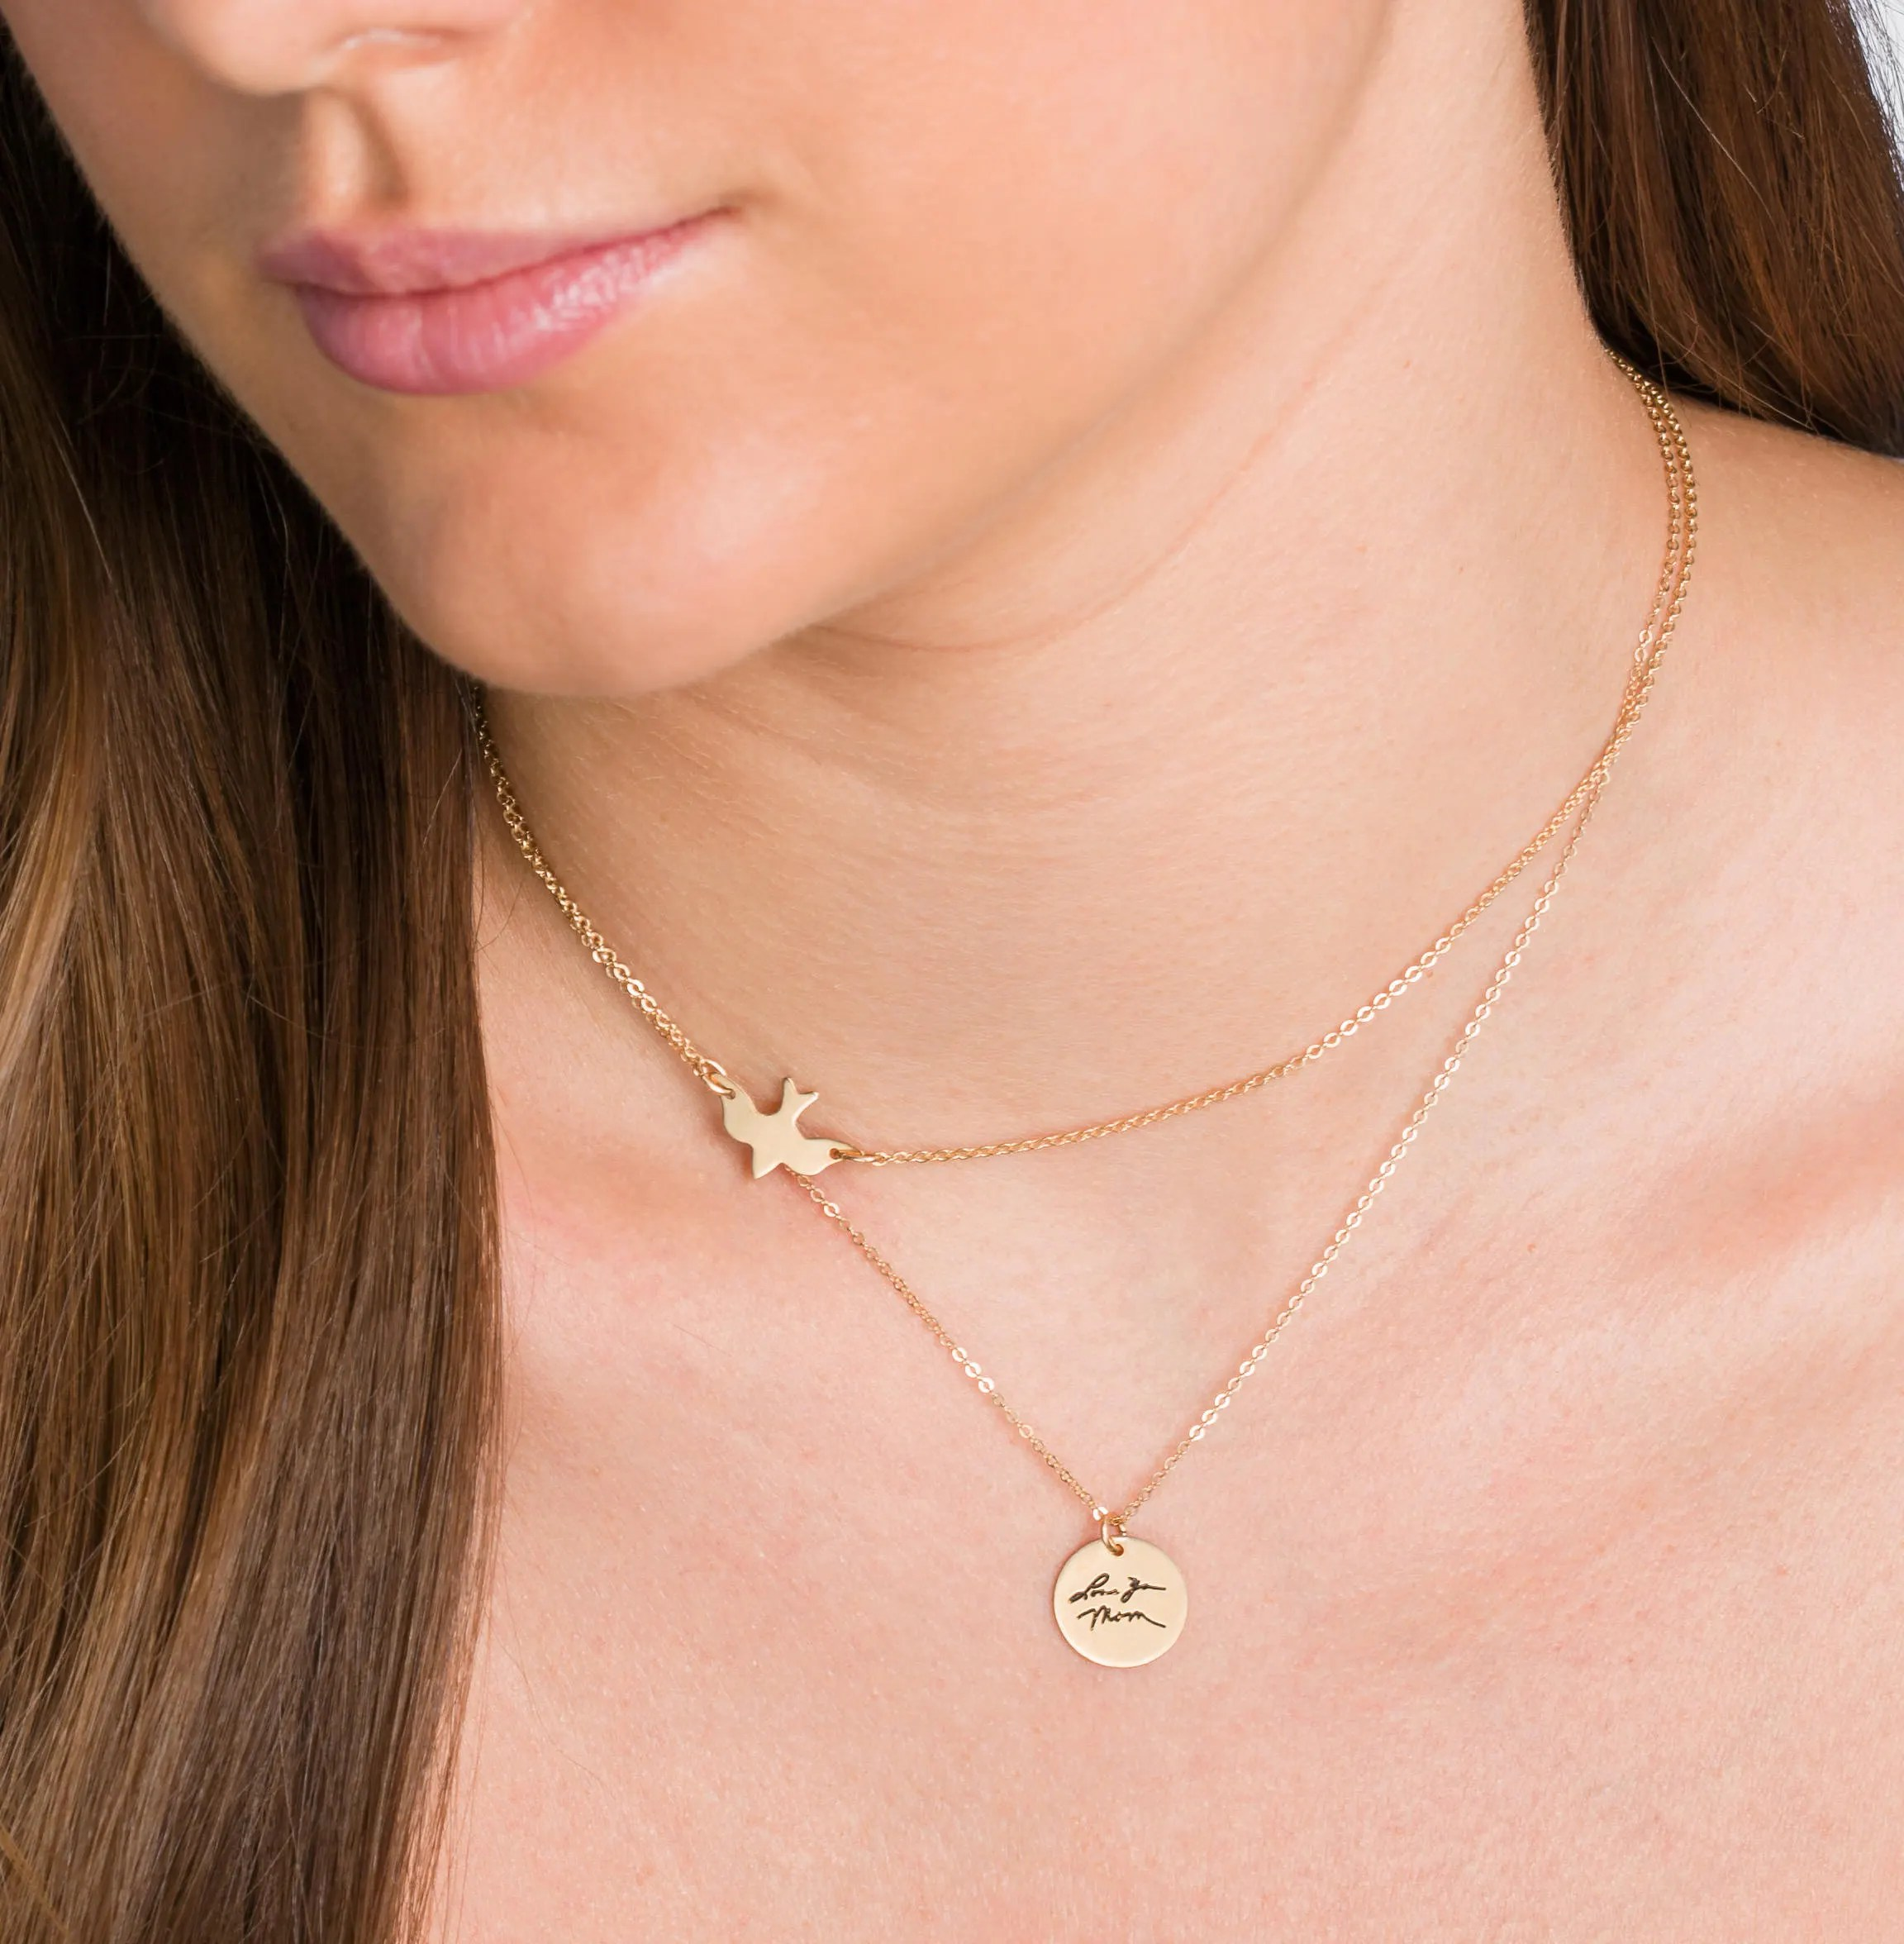 Personalized Disc Handwritten Necklace  YOUR HANDWRITING  image 2